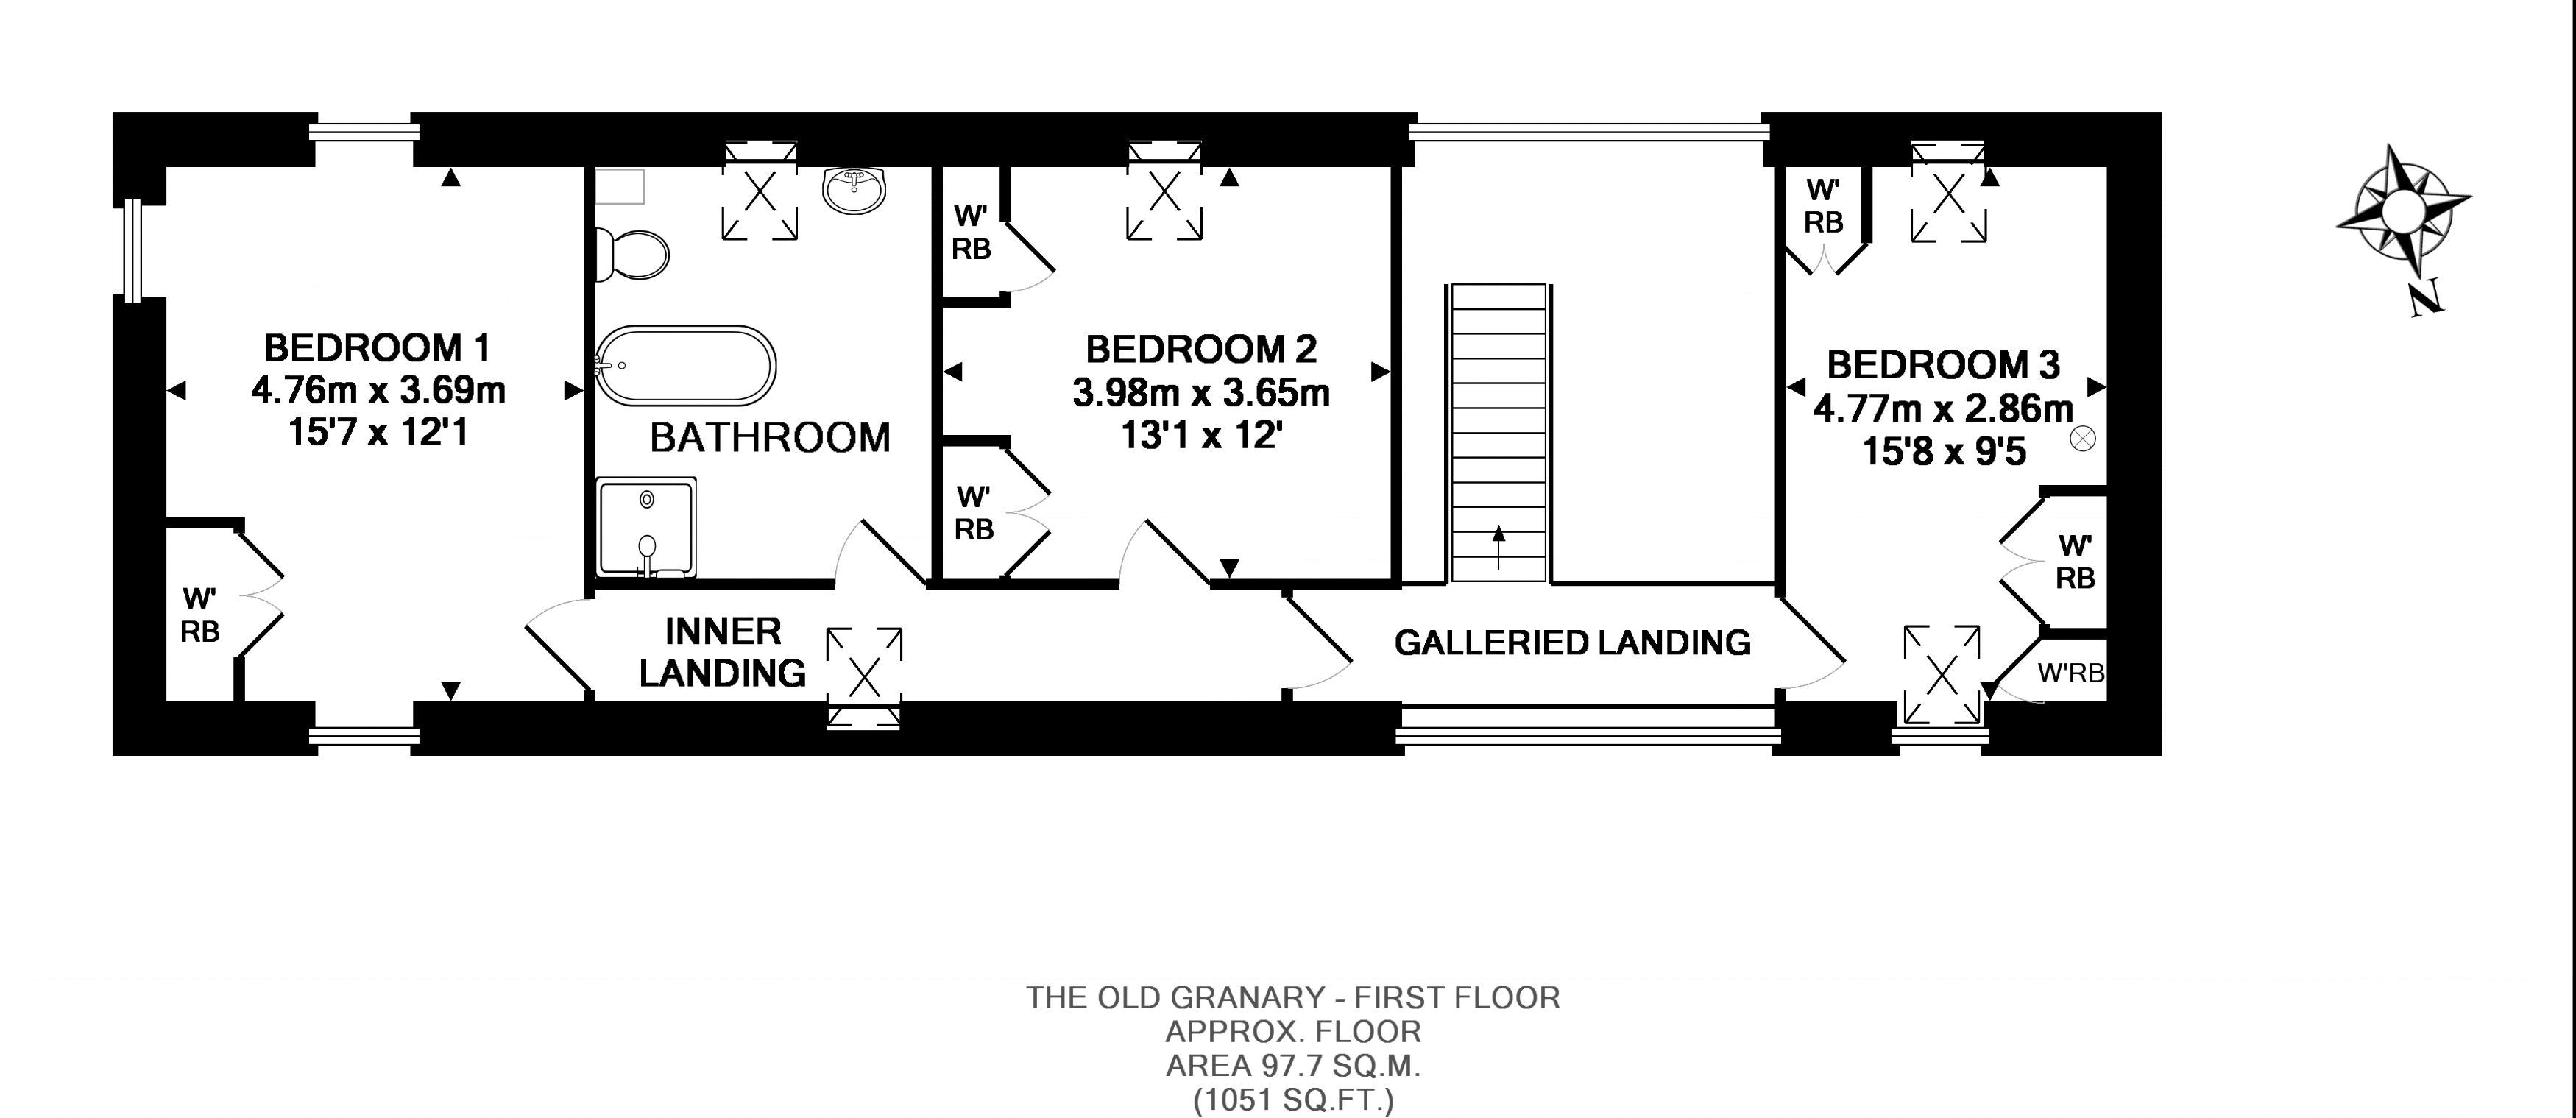 FLOORPLAN: The Old Granary - First Floor